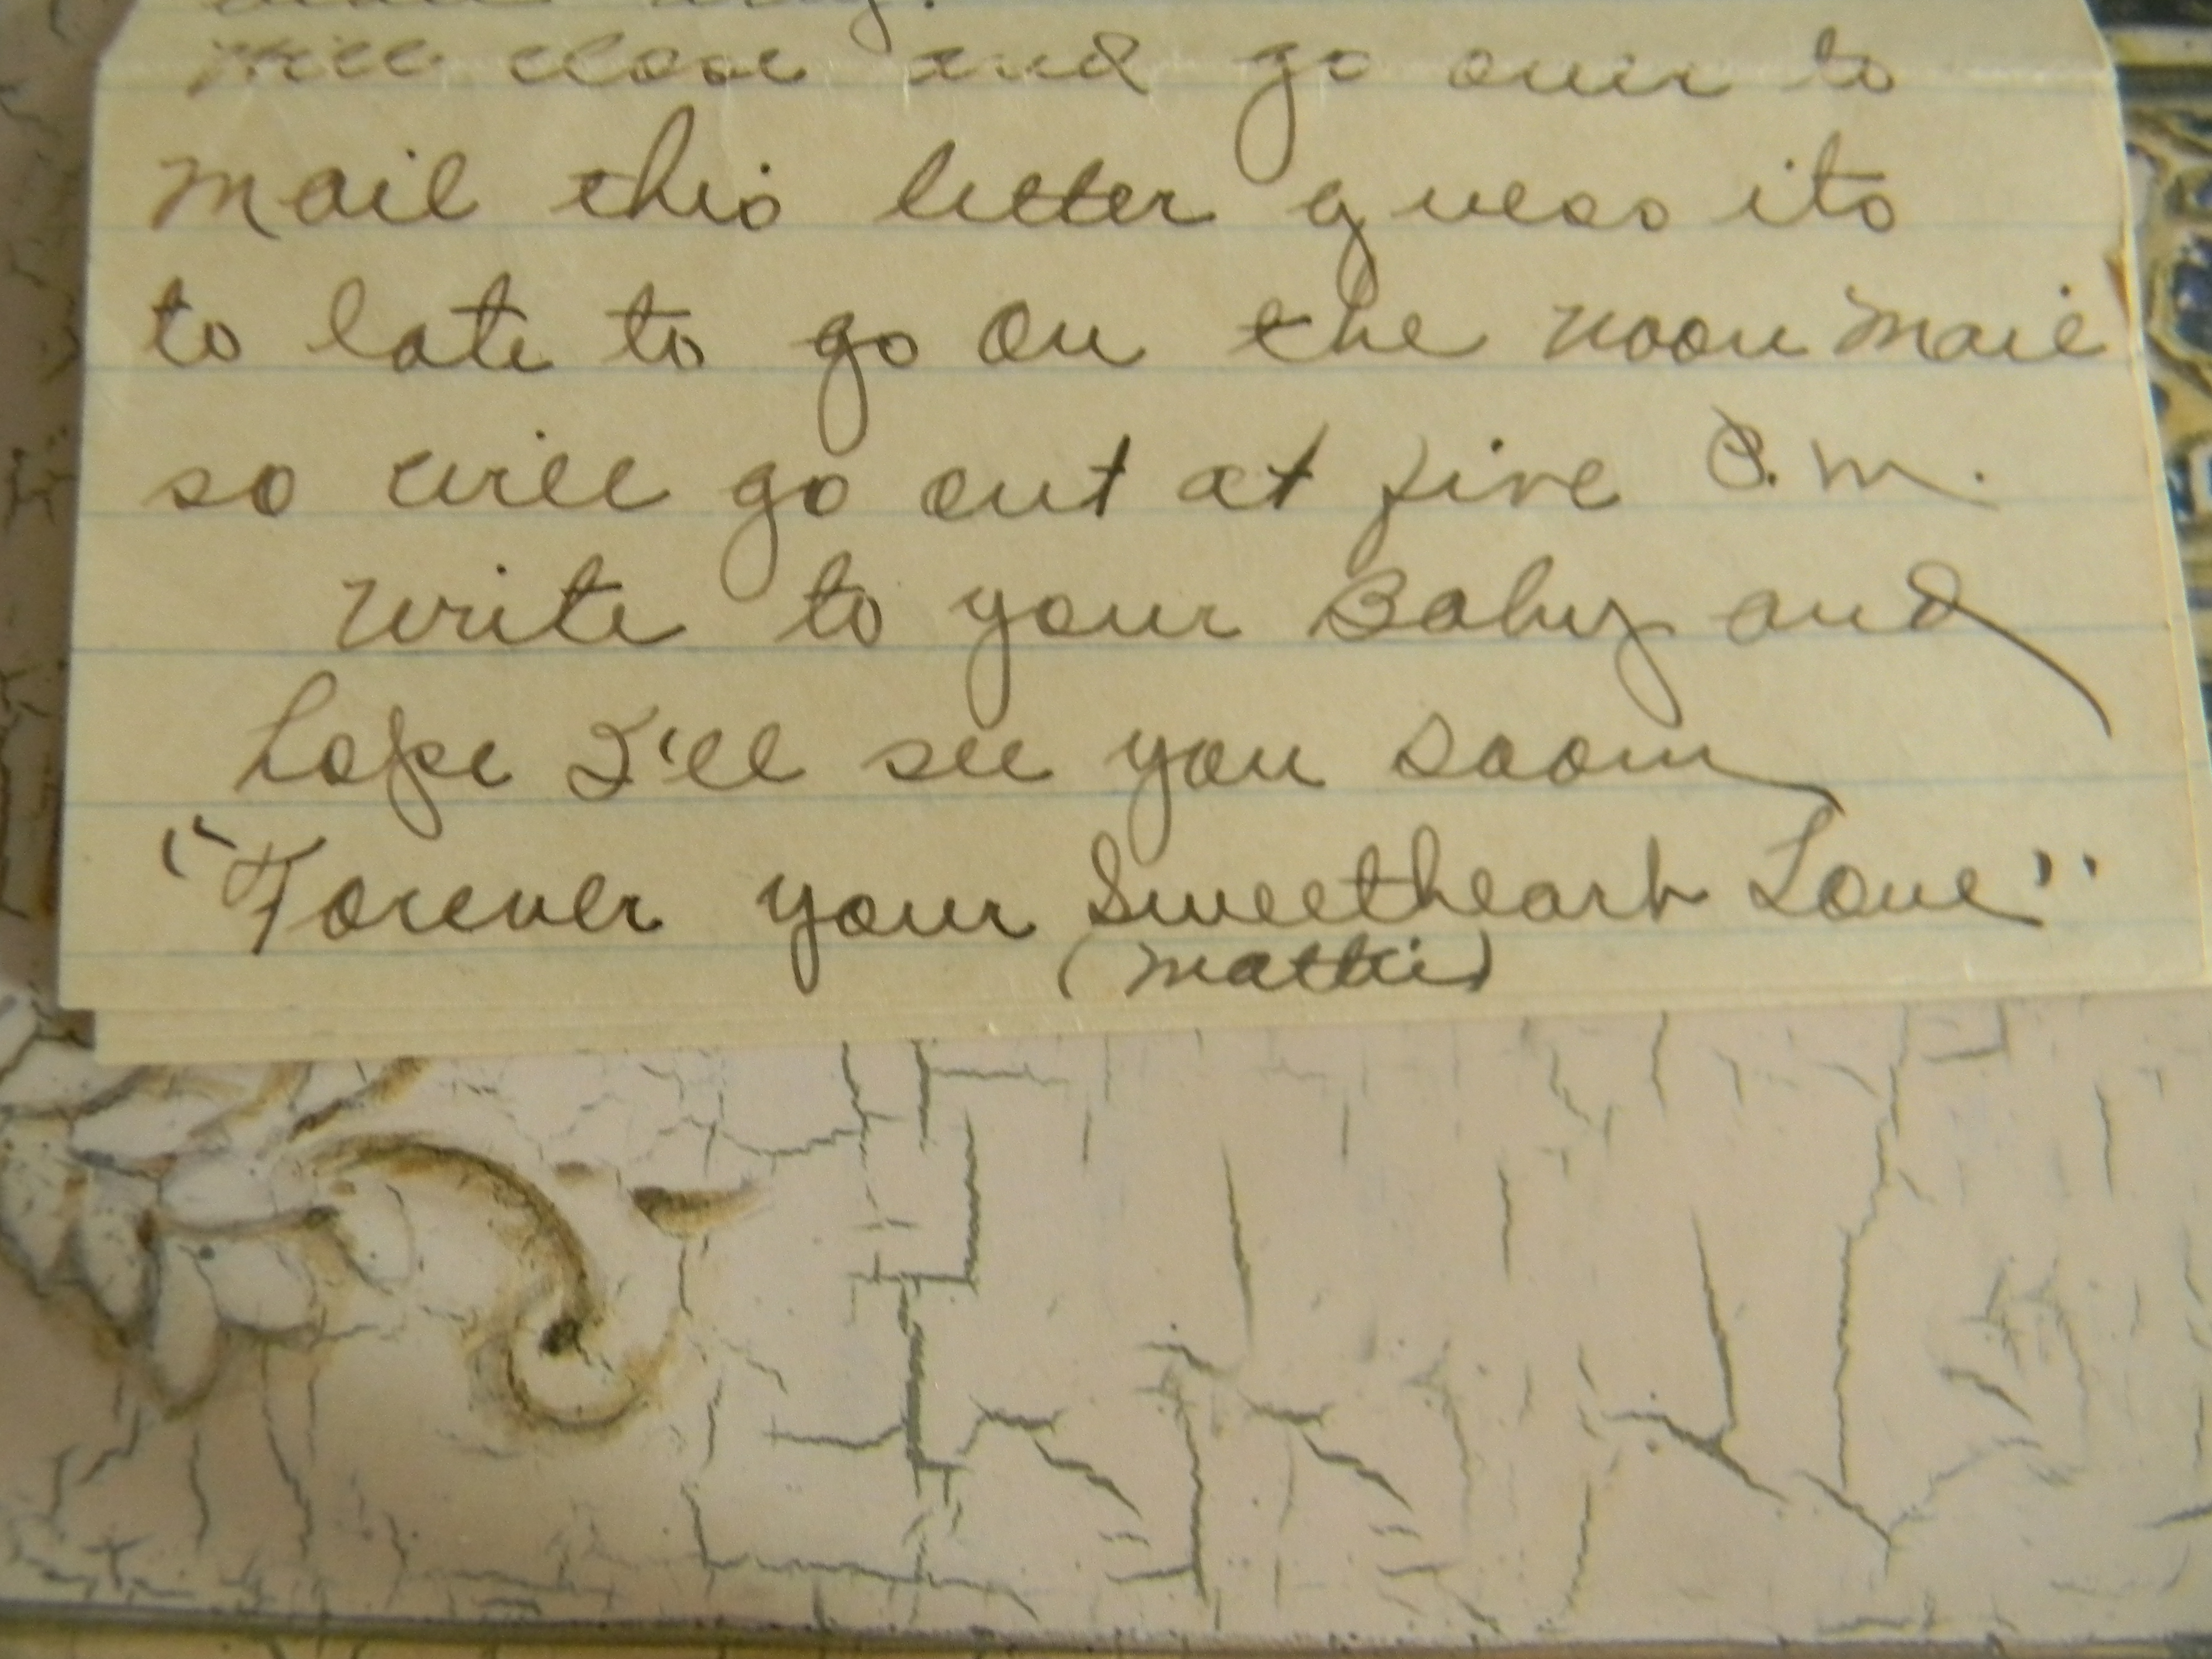 Elizabeth barrett browning didnt have a lock on love letters my dearest baby love this is how my grandmother started a letter to my grandfather when she was away from him while visiting her parents mitanshu Choice Image